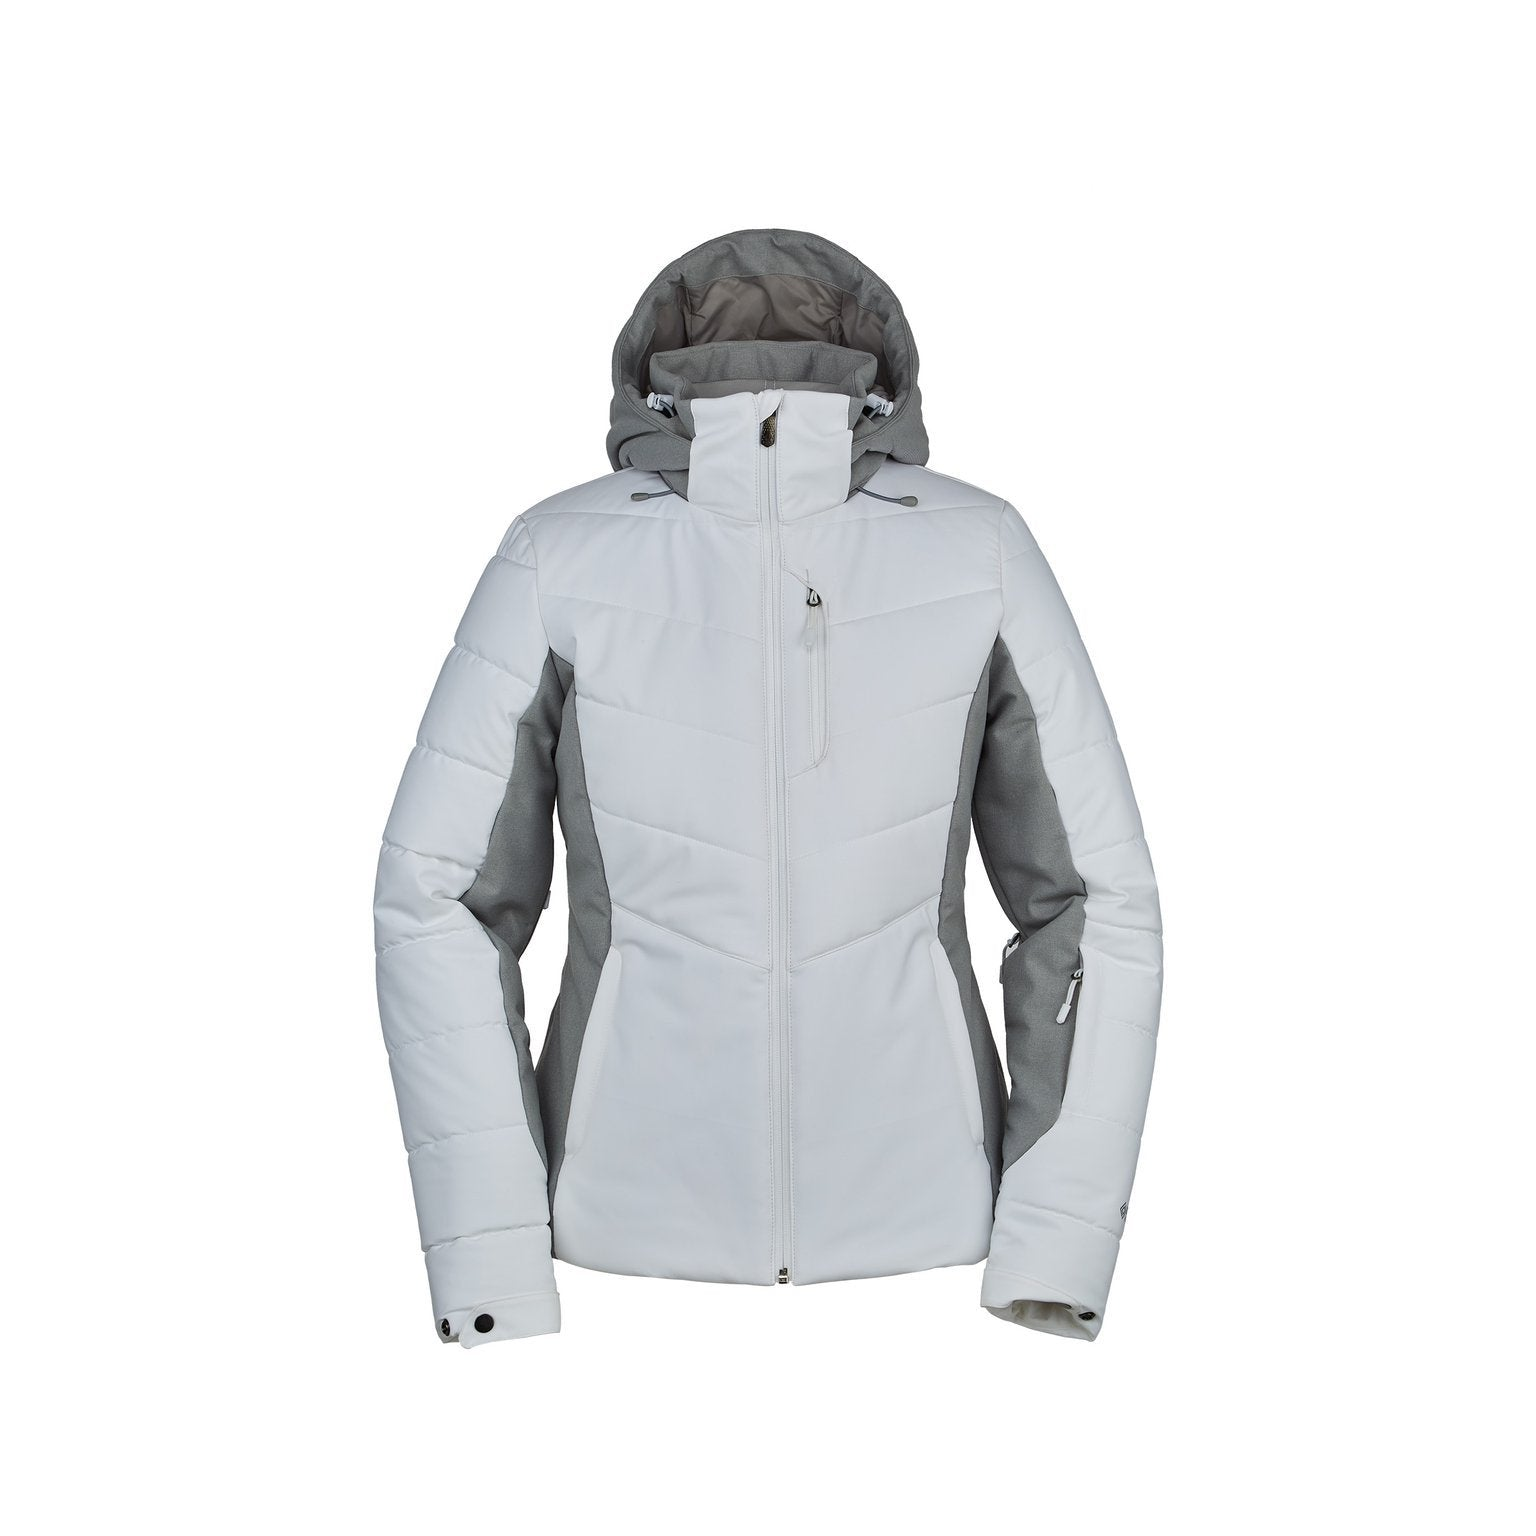 Spyder 2021 Women's HAVEN GTX INFINIUM Jacket